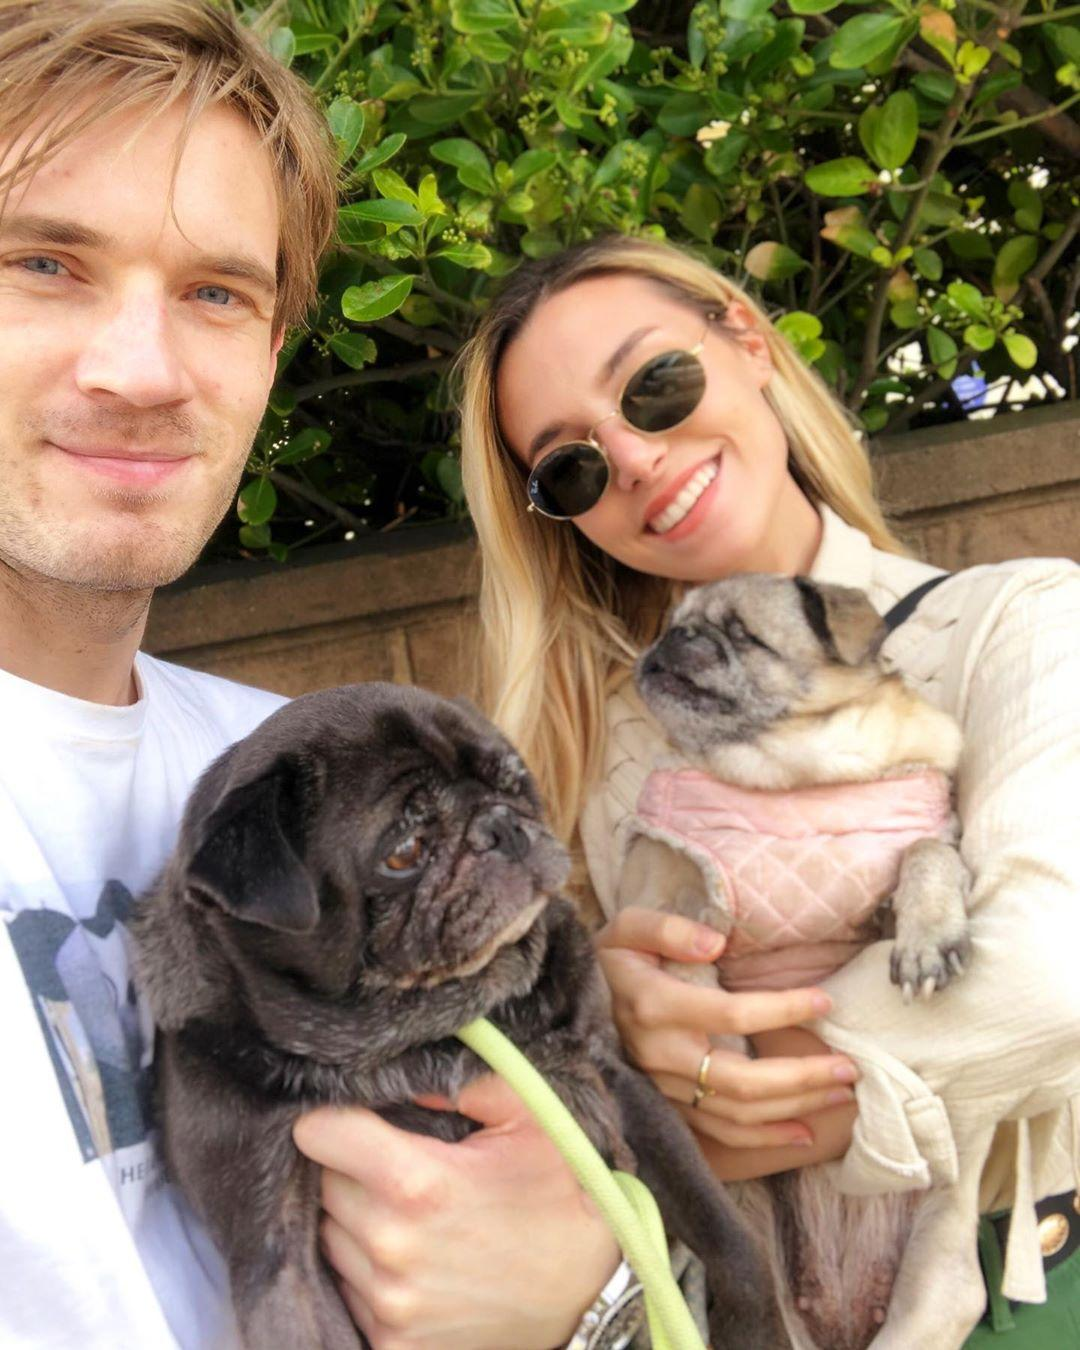 pewdiepie-marzia-wedding-photos-1566311720194.jpg